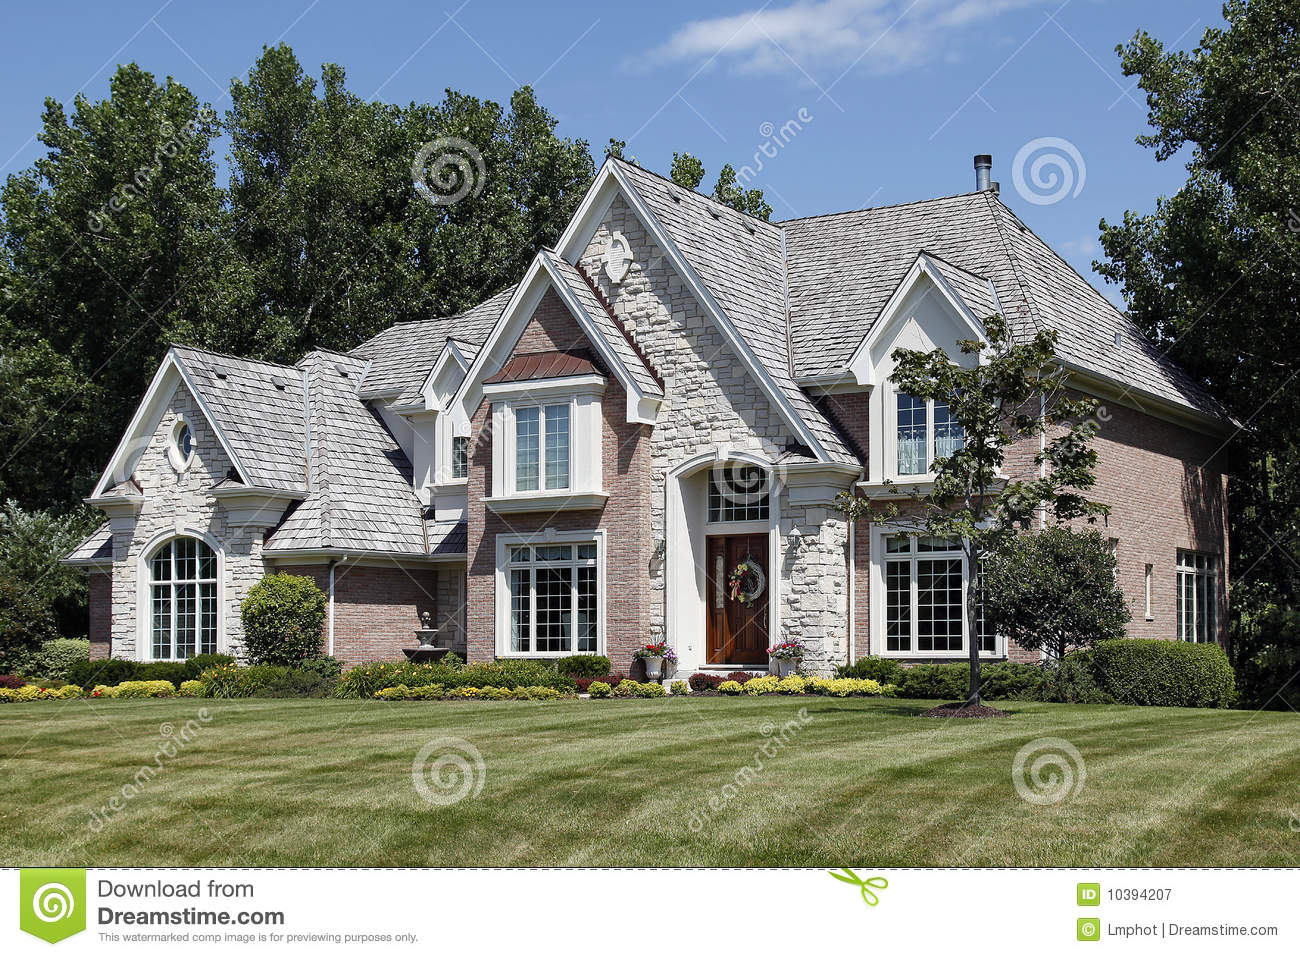 Luxury brick home in suburbs royalty free stock for Free luxury home images